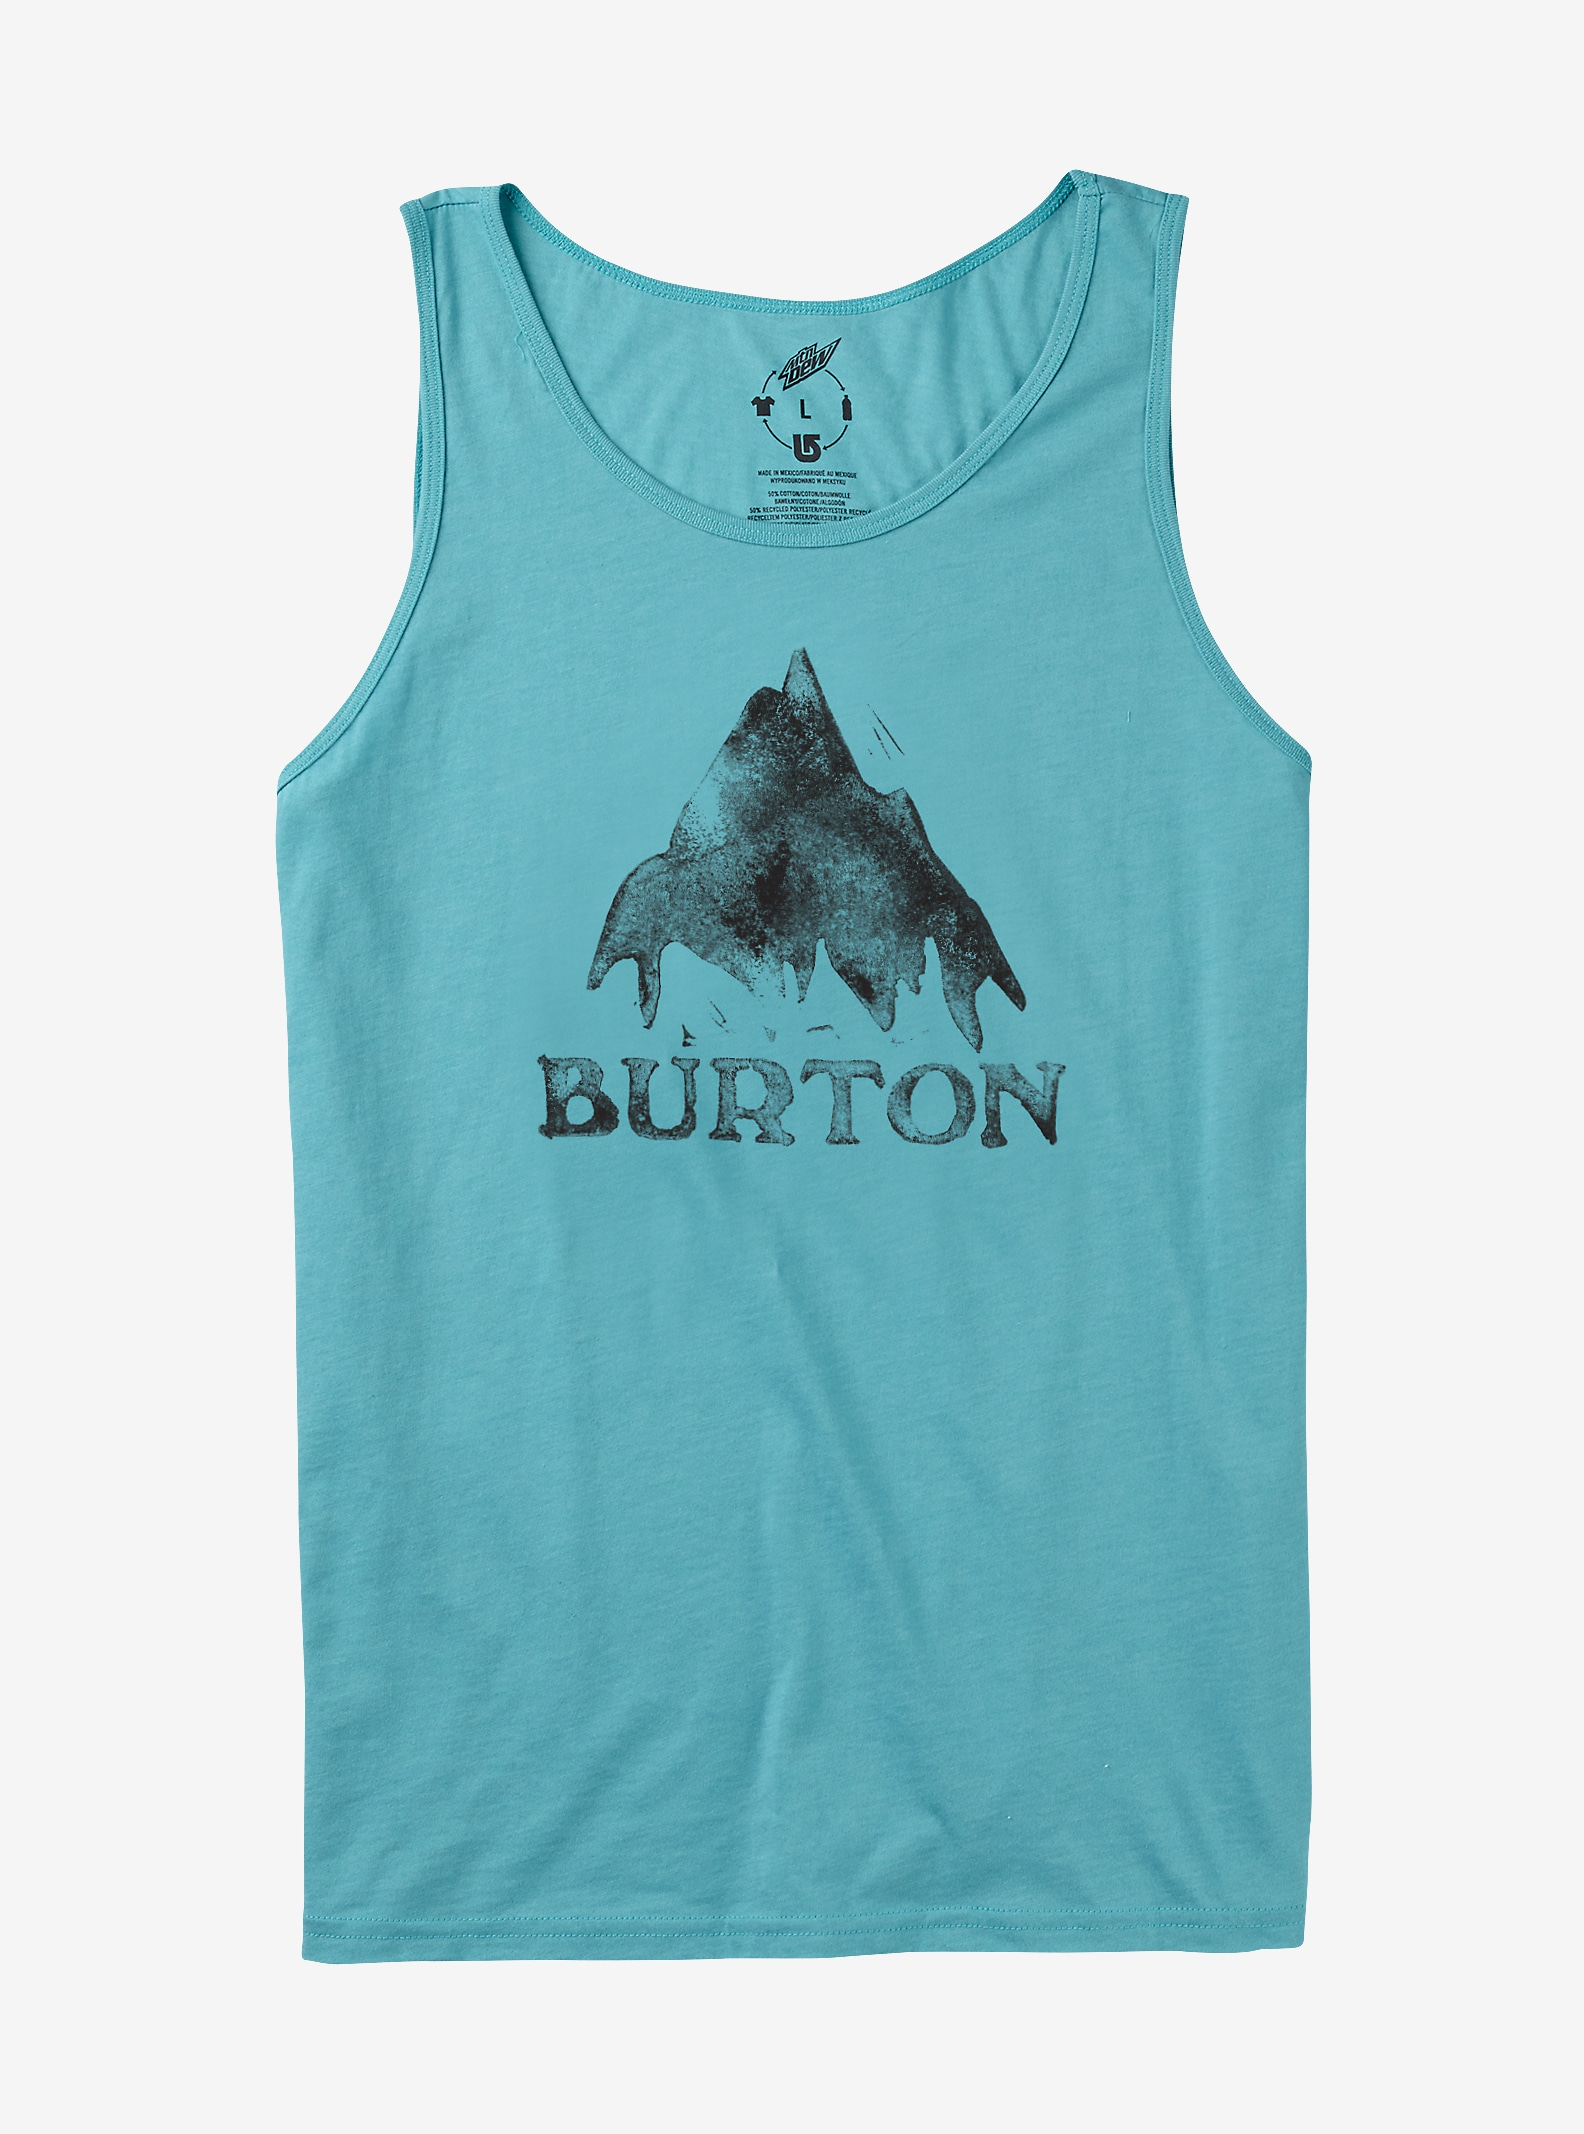 Burton Stamped Mountain Recycled Tank shown in Dusty Blue Heather